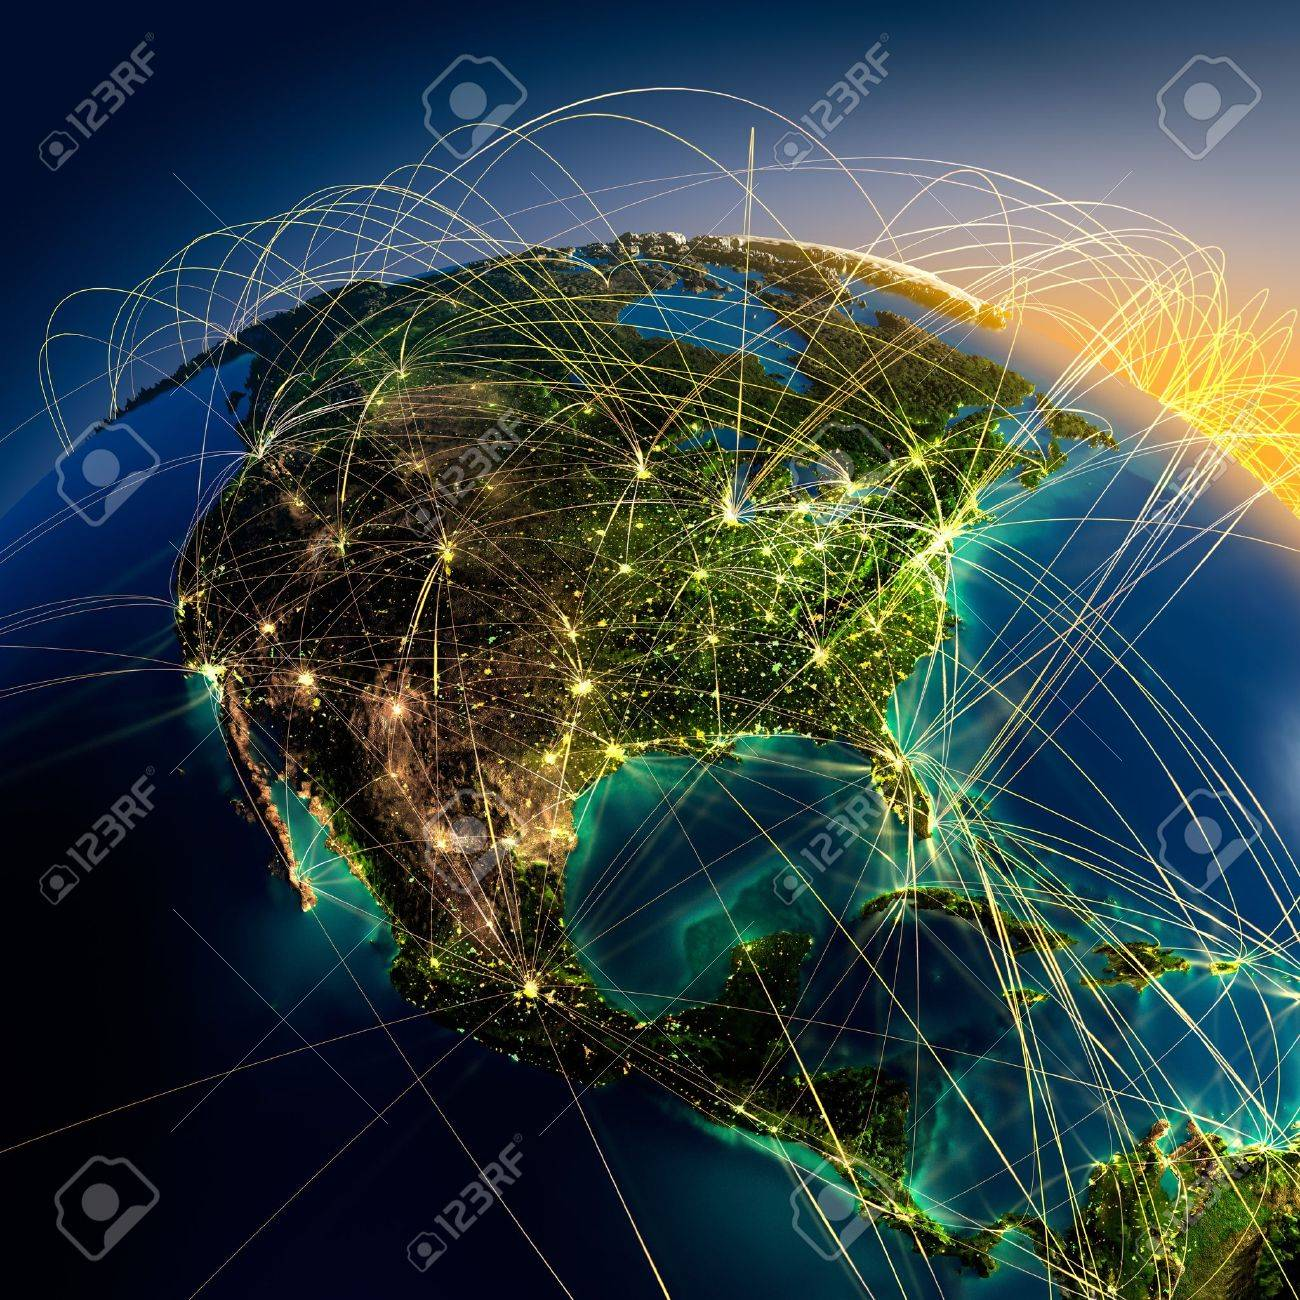 Highly detailed planet Earth at night with embossed continents, illuminated by light of cities, translucent and reflective ocean. Earth is surrounded by a luminous network, representing the major air routes based on real data - 13654267